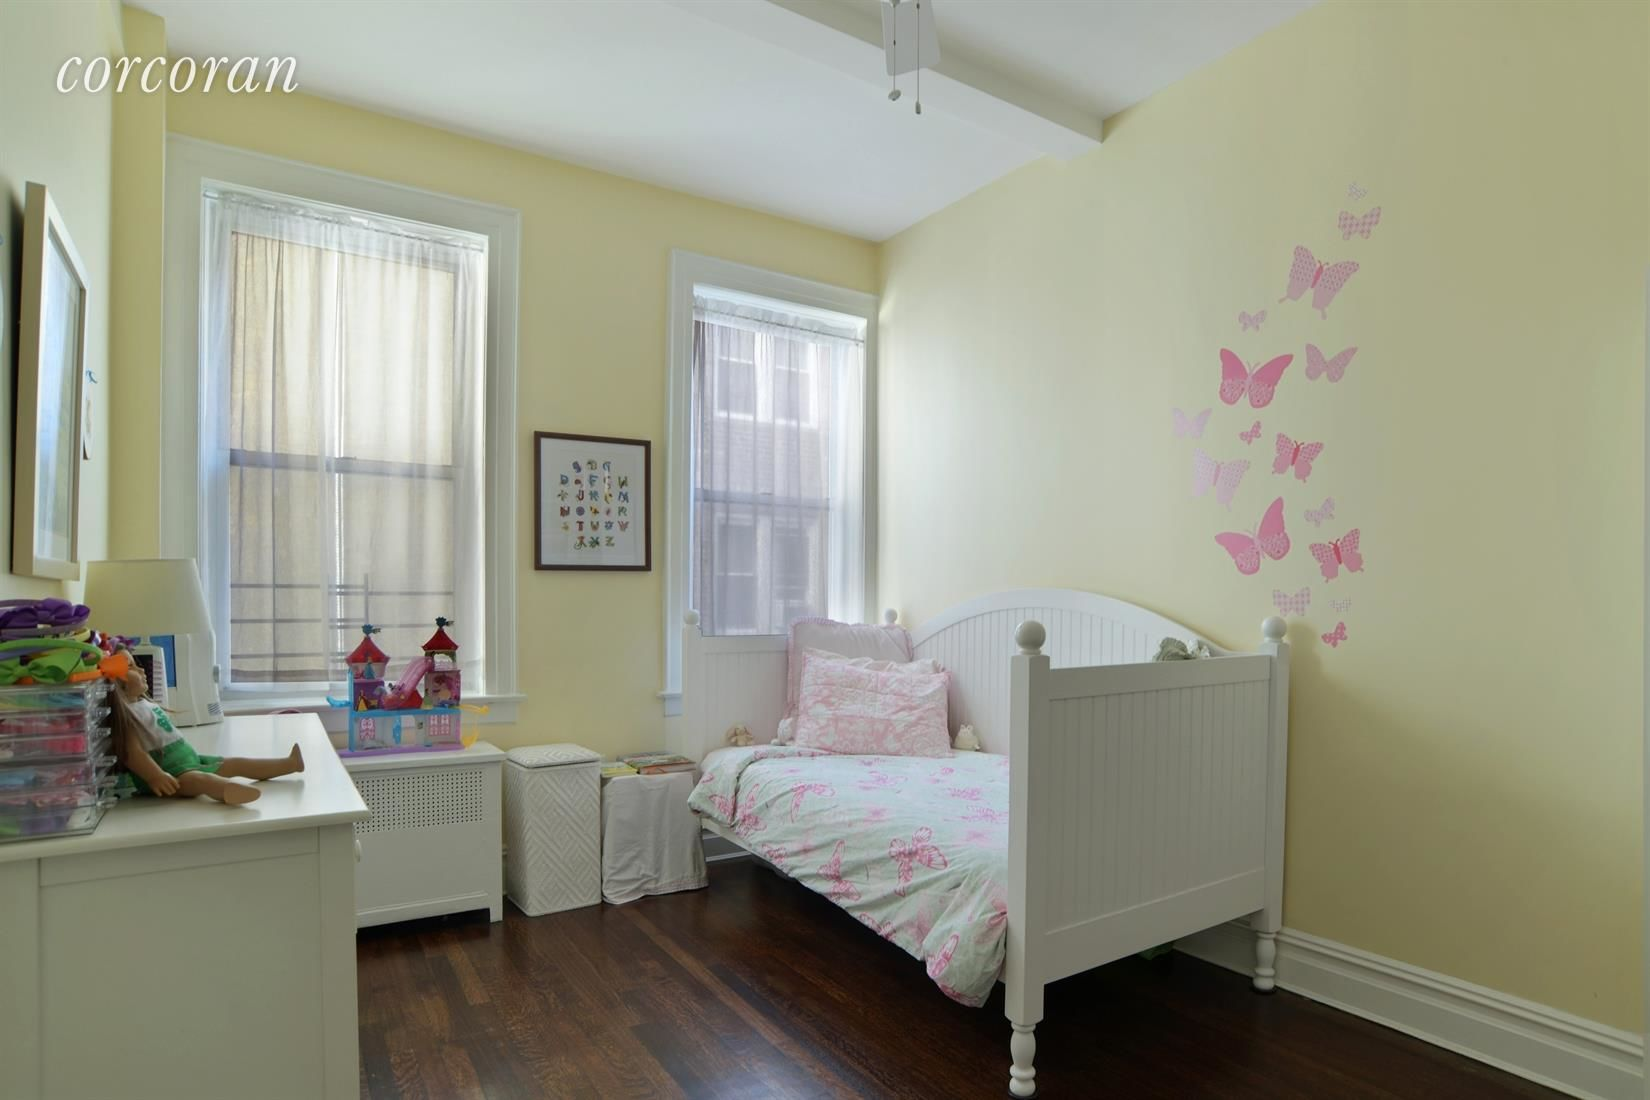 41 Eastern Pkwy, APT 4A Photo 8 - CORCORAN-5425191